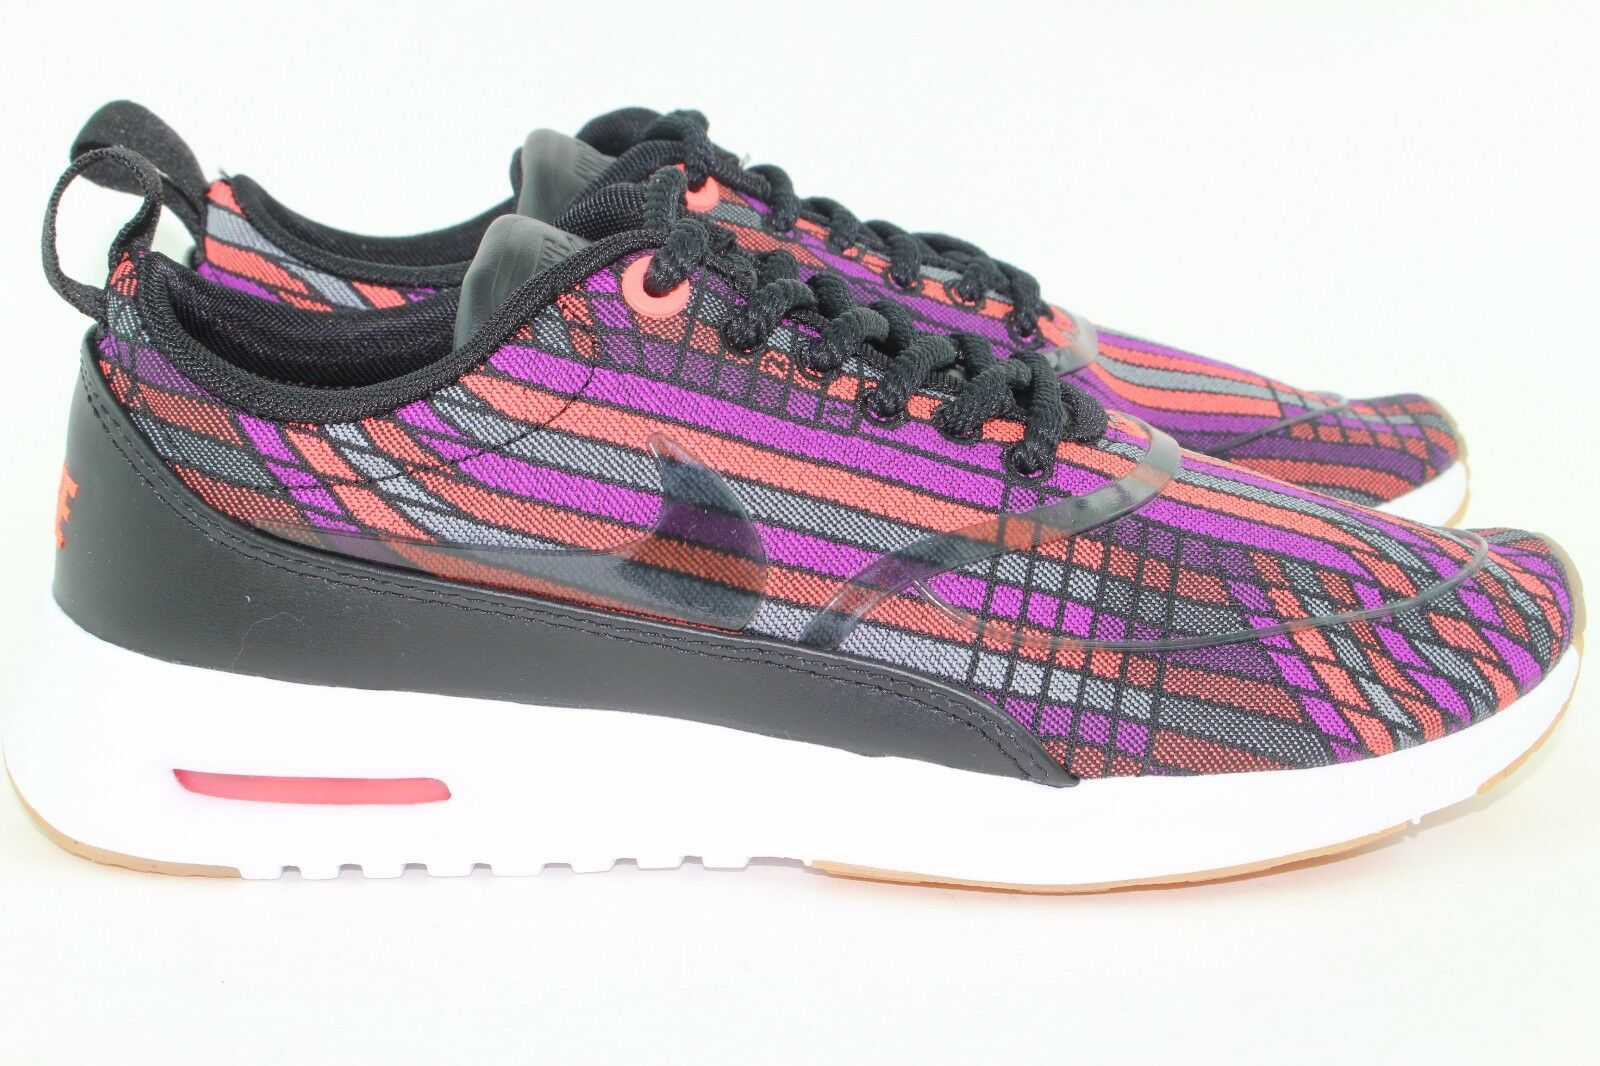 NIKE WOMAN AIR MAX THEA JCRD PREMIUM WOMAN SIZE 6.0 NEW RARE AUTHENTIC RUNNING